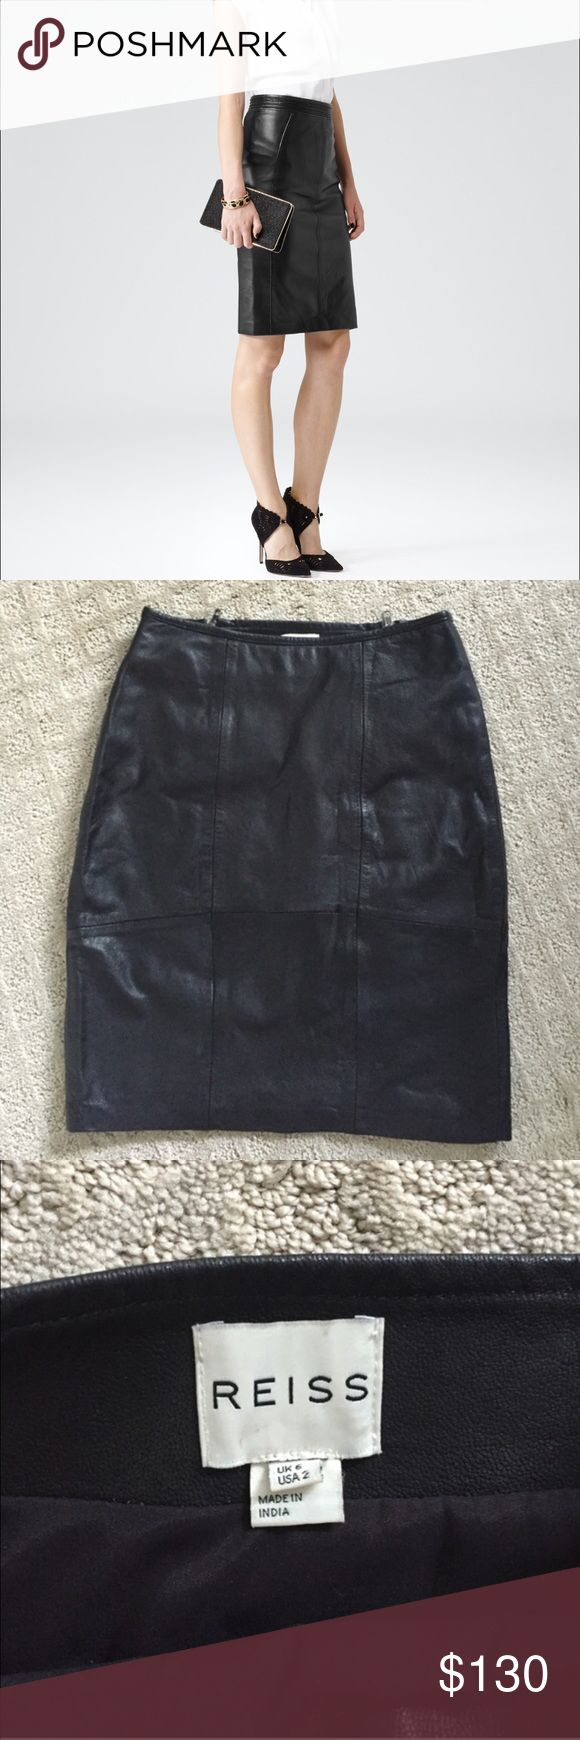 Reiss leather skirt 2 High waisted black leather skirt, worn once and is in excellent condition! Perfect for work or a night out. Reiss Skirts Pencil